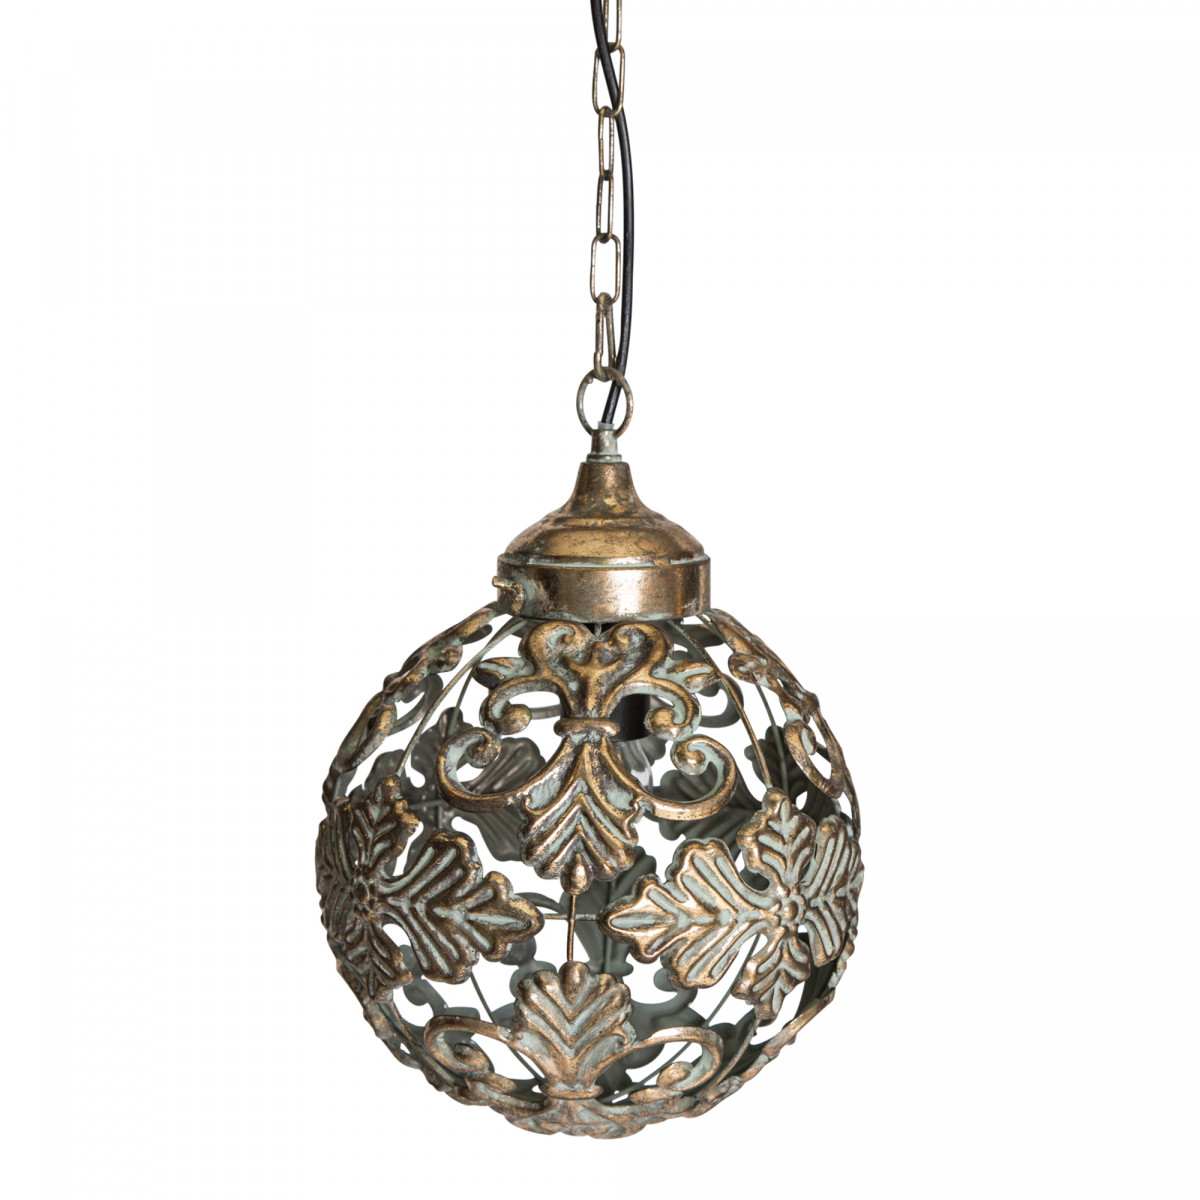 PTMD Enza Gold hanglamp ornament